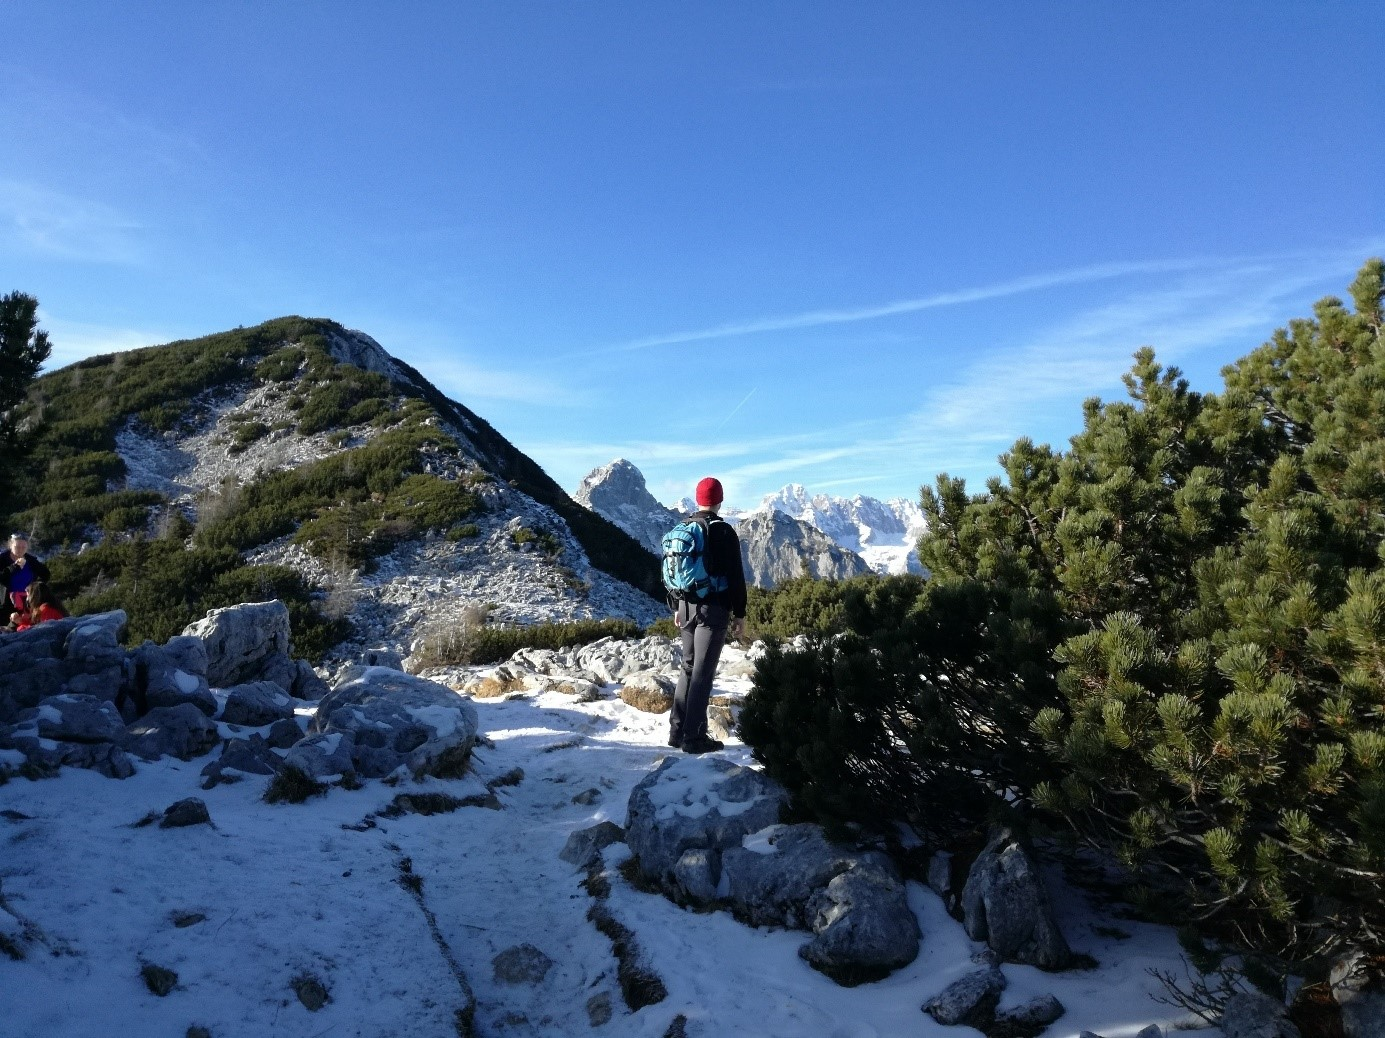 After the Blejska hut at the Lipanca valley, the trail puts on a scenic note revealing amazing views of Triglav and other grand mountains in the Julian Alps